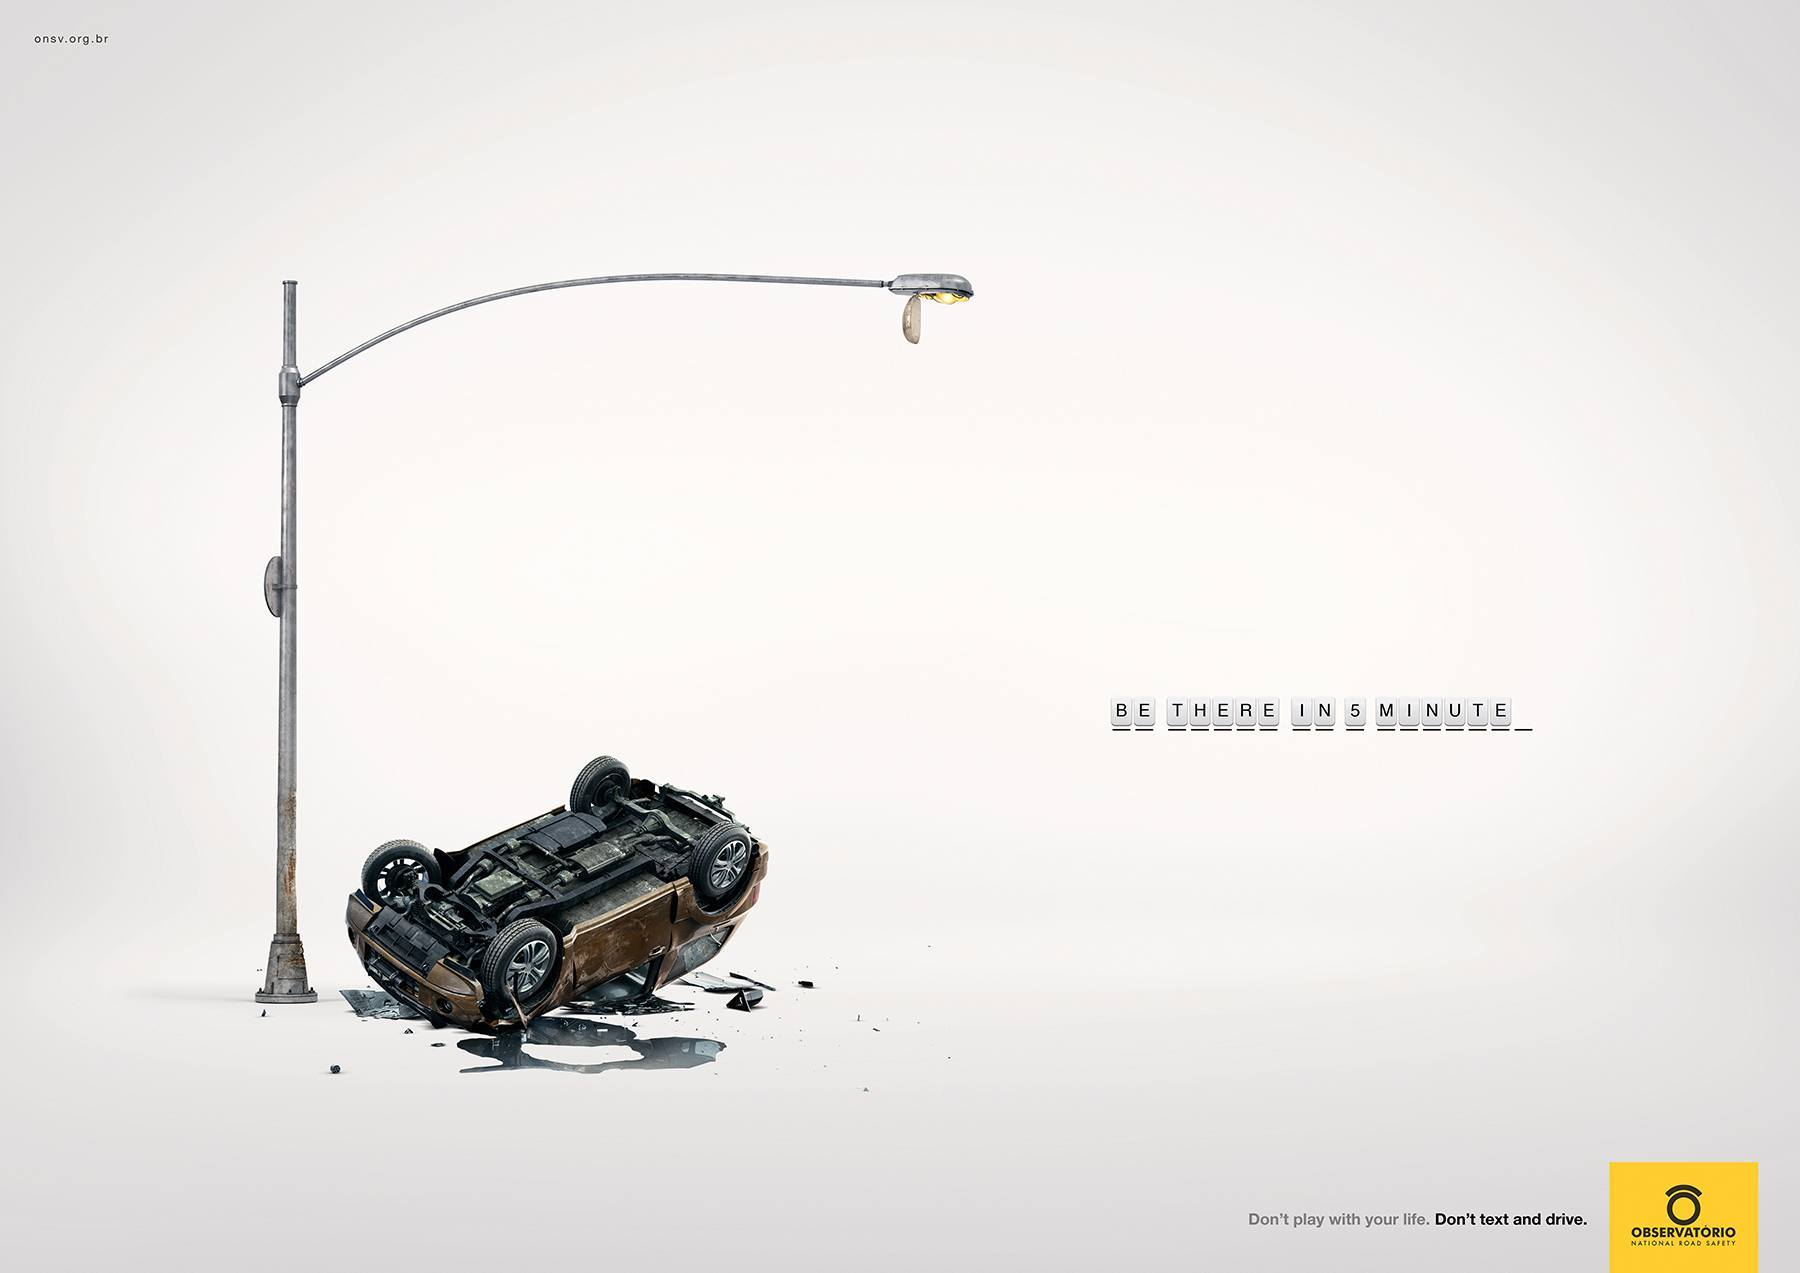 Kreation_observatorio-national-road-safety-hangman-print-376019-adeevee